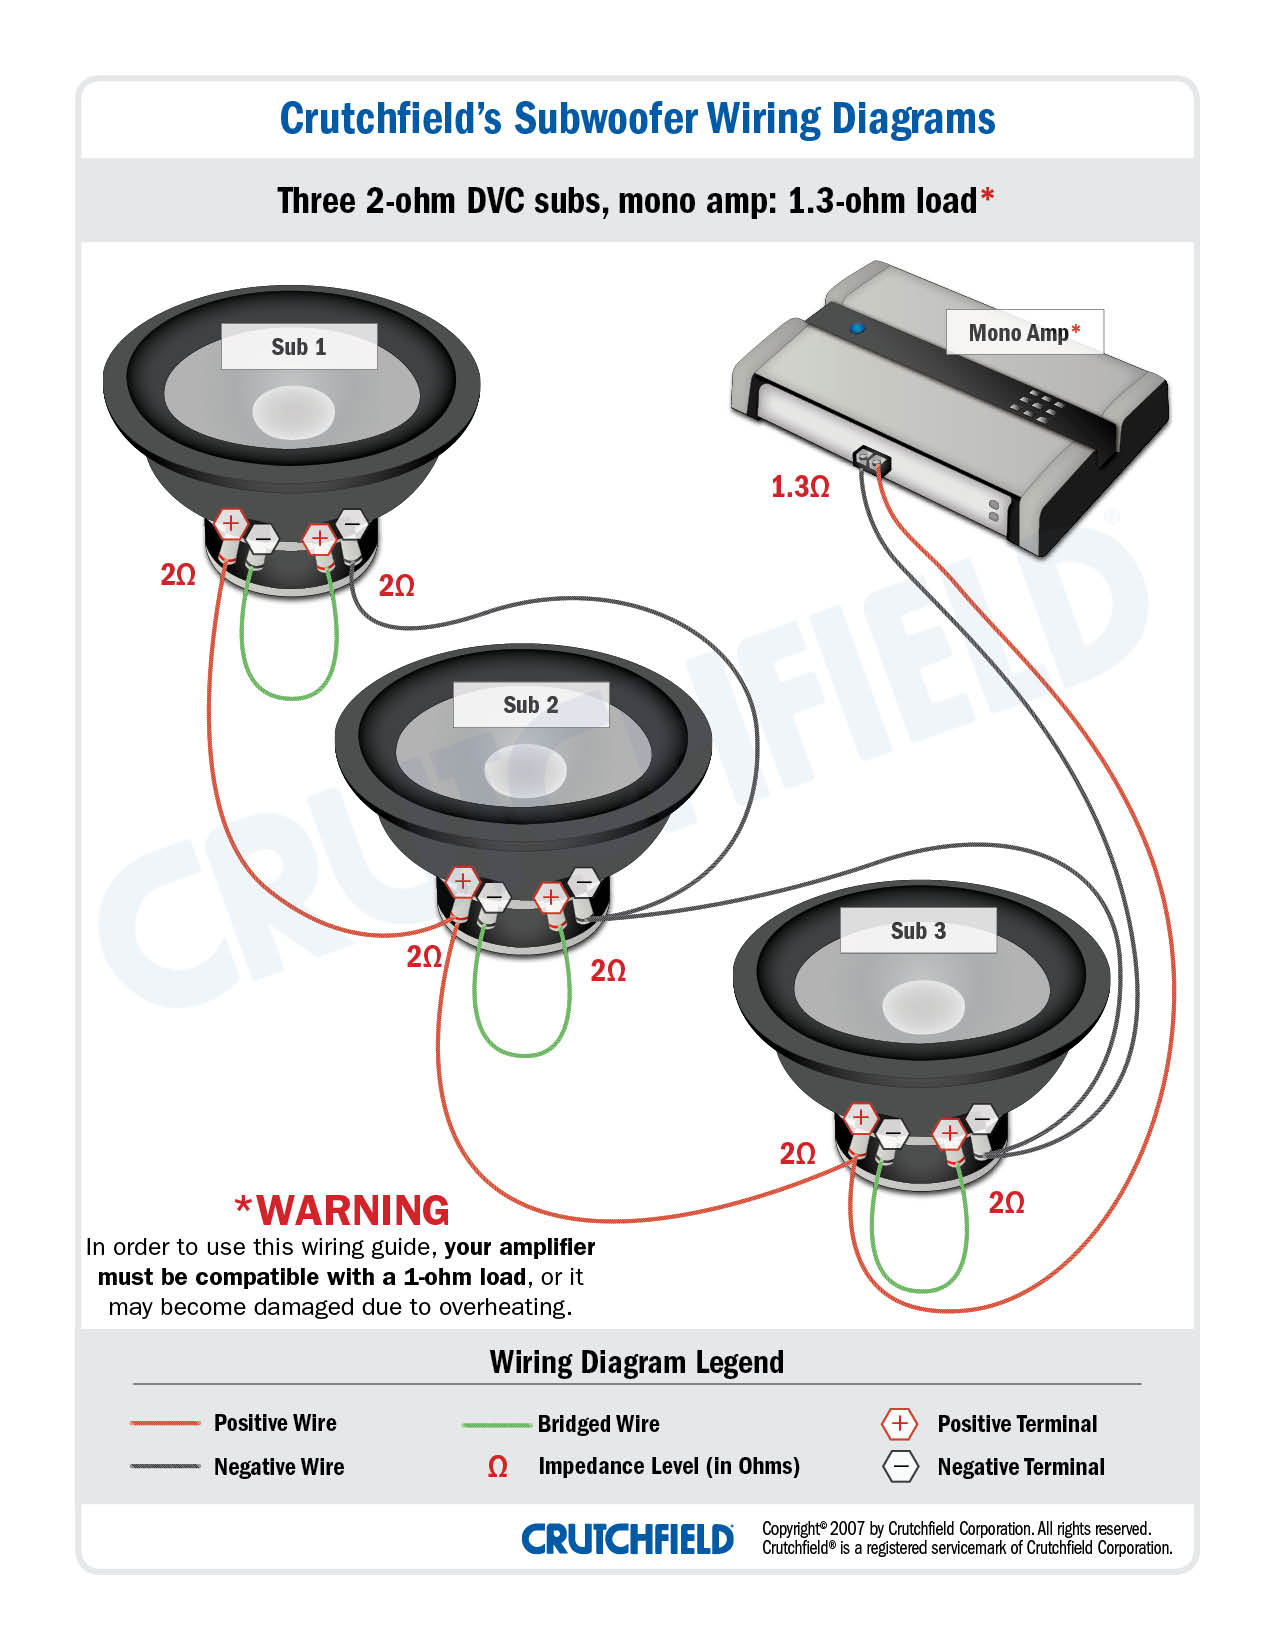 3 DVC 2 ohm mono low imp subwoofer wiring diagrams amp wiring diagram at cita.asia